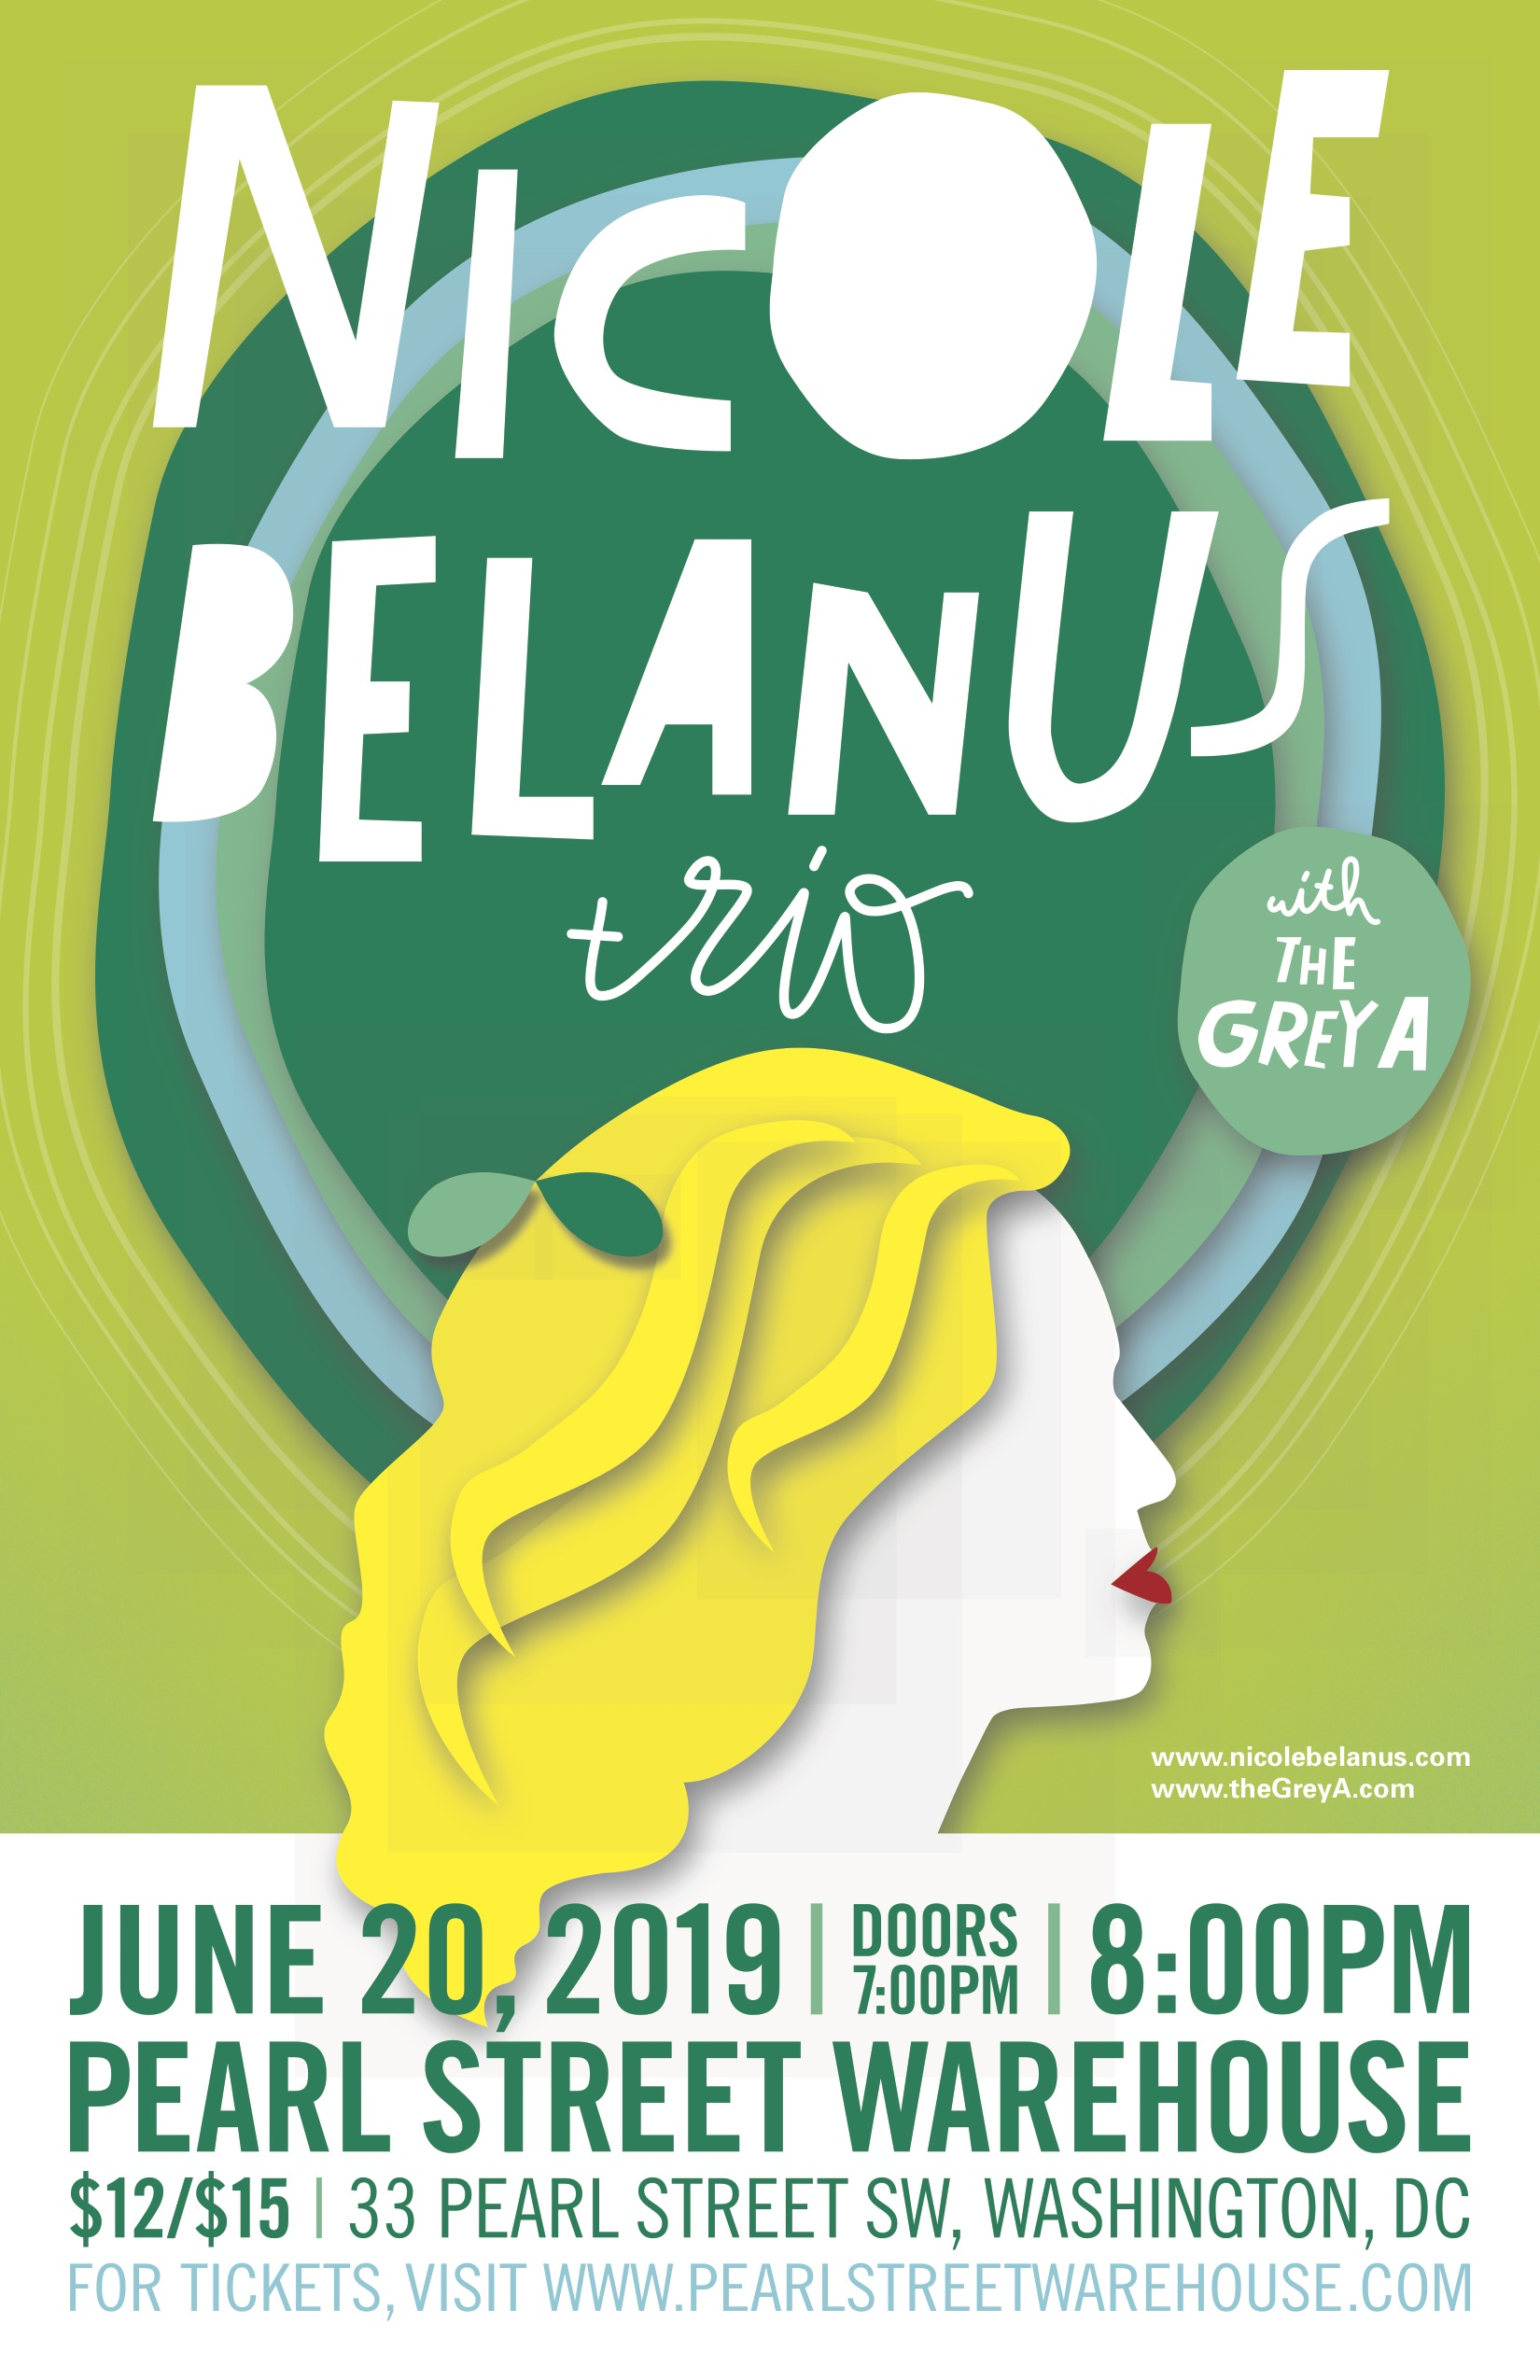 Nicole Belanusthe Grey AThurs, June 20th - 7pm doors / 8pm showtime+21    $12 in advance / $15 day of show